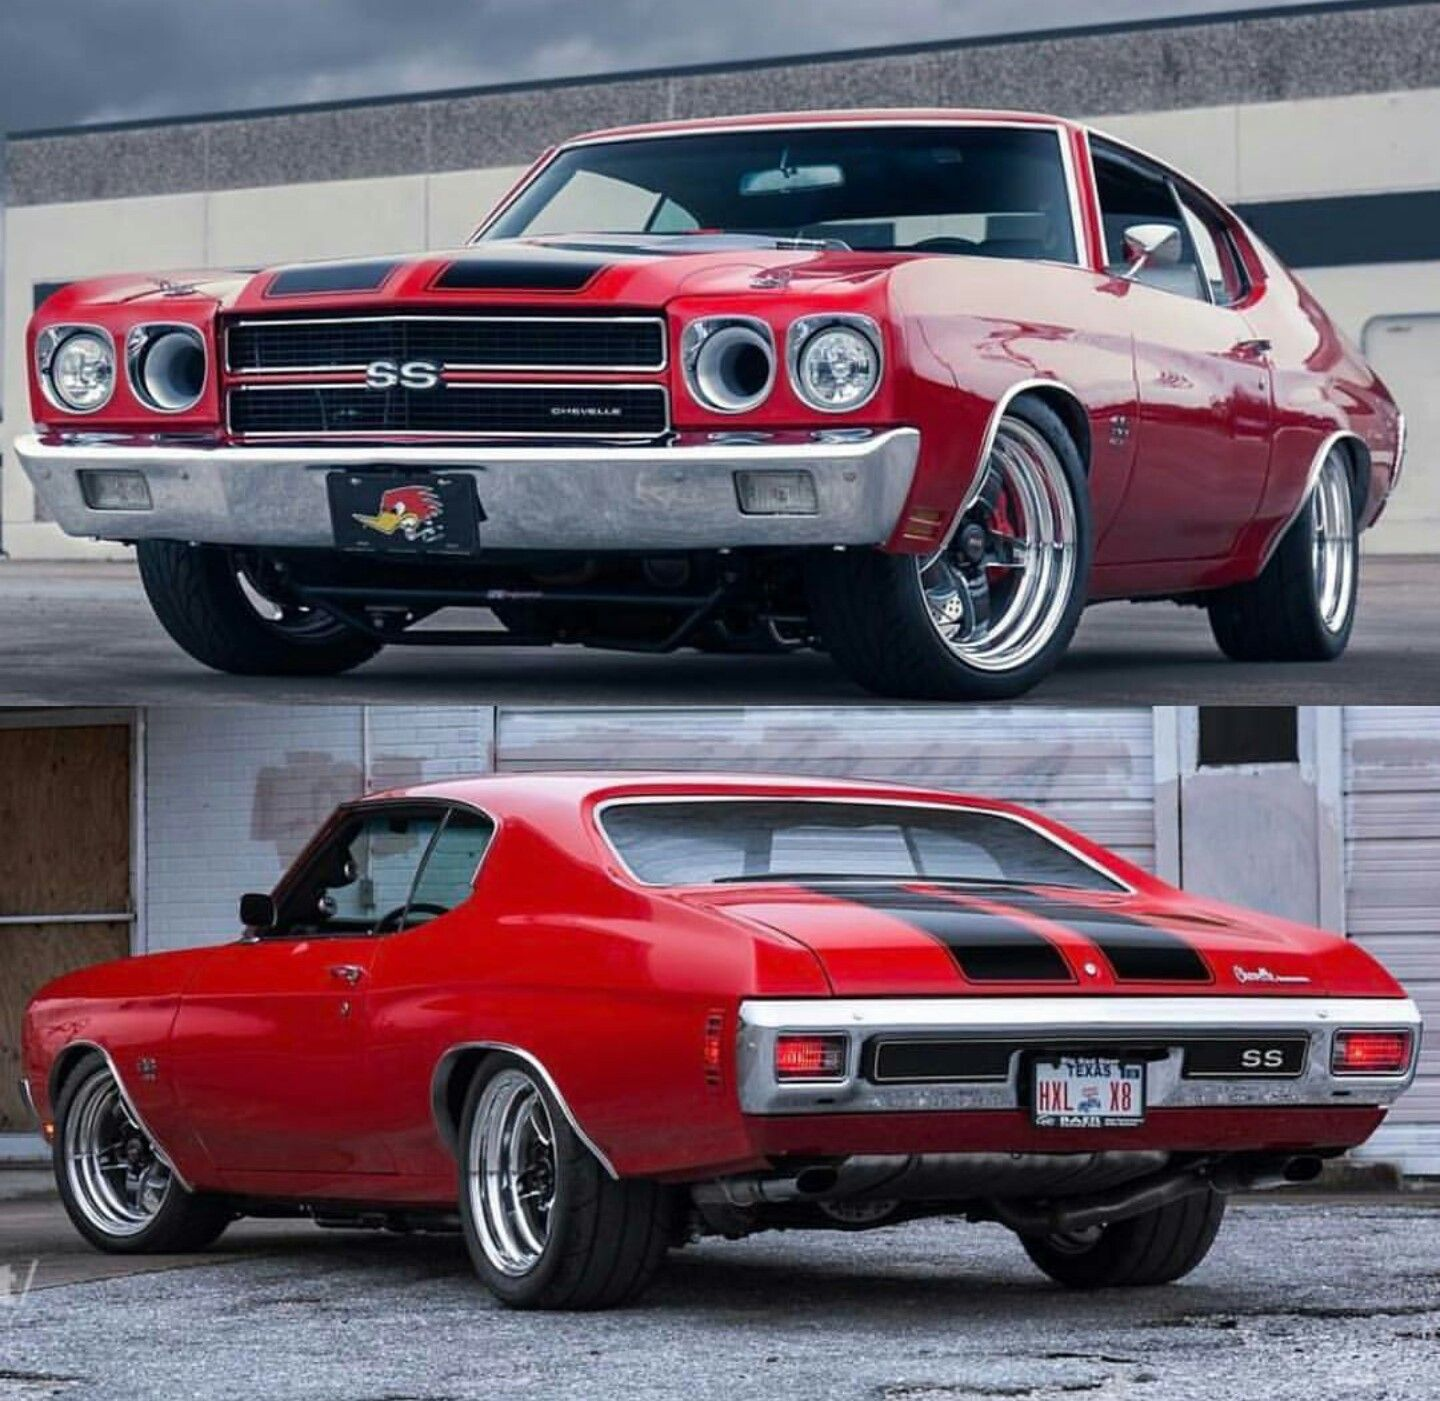 1970 Chevelle SS Muscle Cars & Hot Rods Pinterest